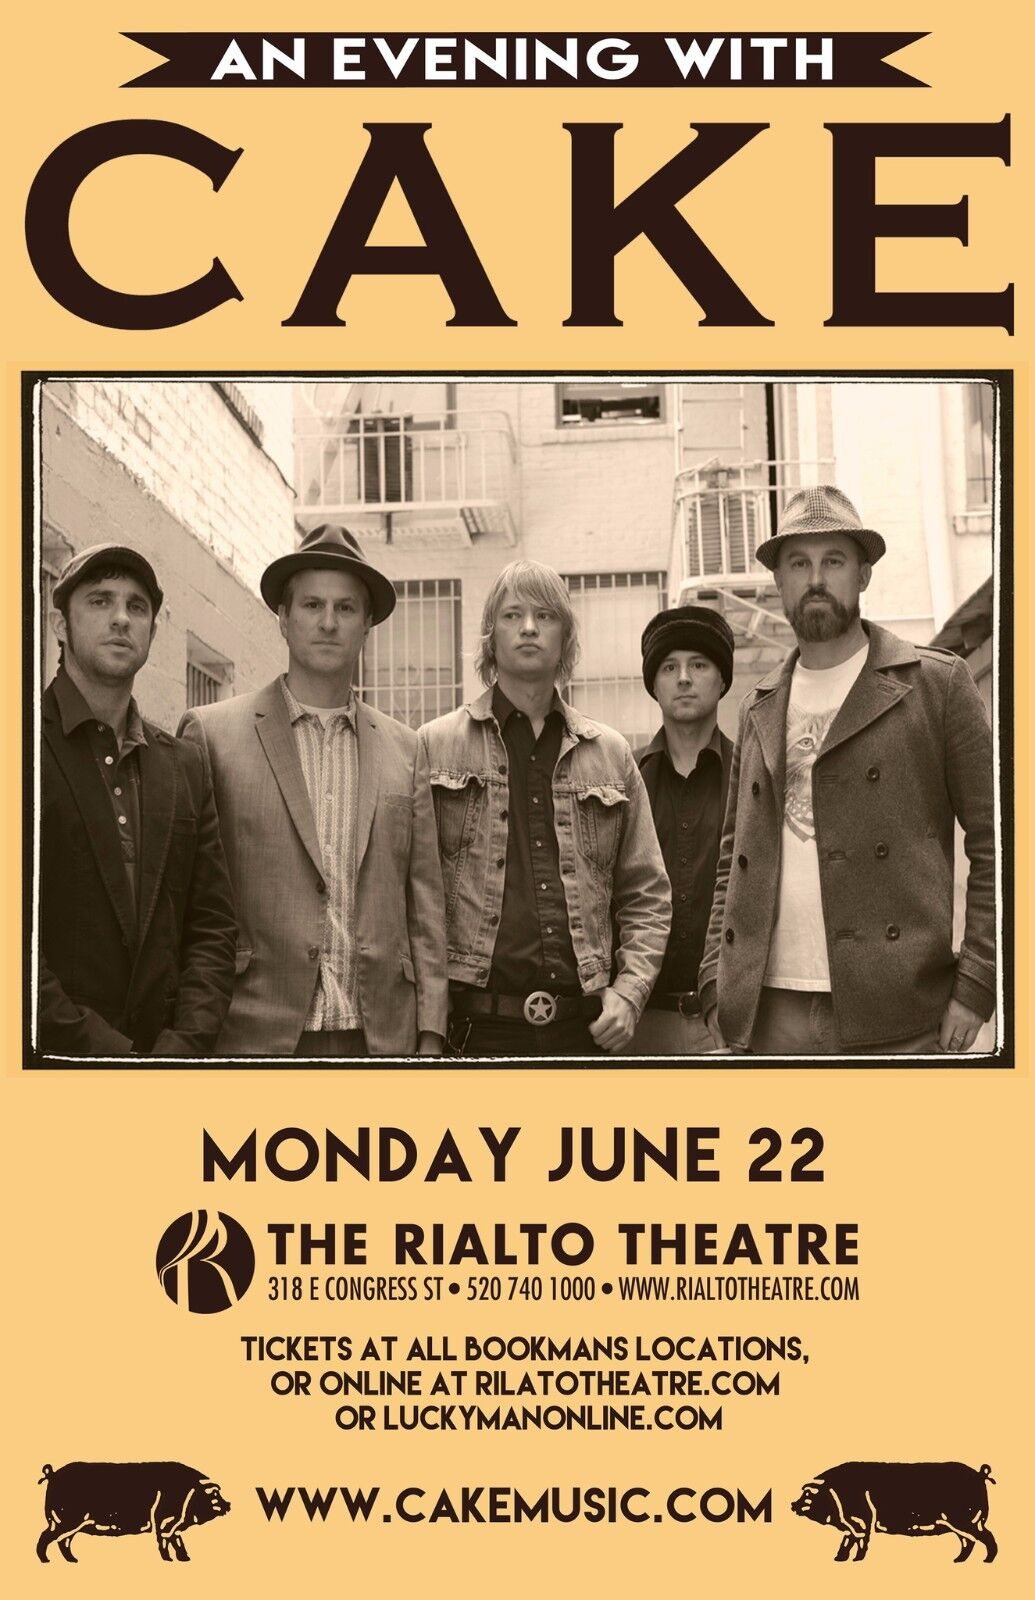 CAKE AN EVENING WITH 2015 TUCSON CONCERT TOUR POSTER - Alternative Rock Music - $10.99